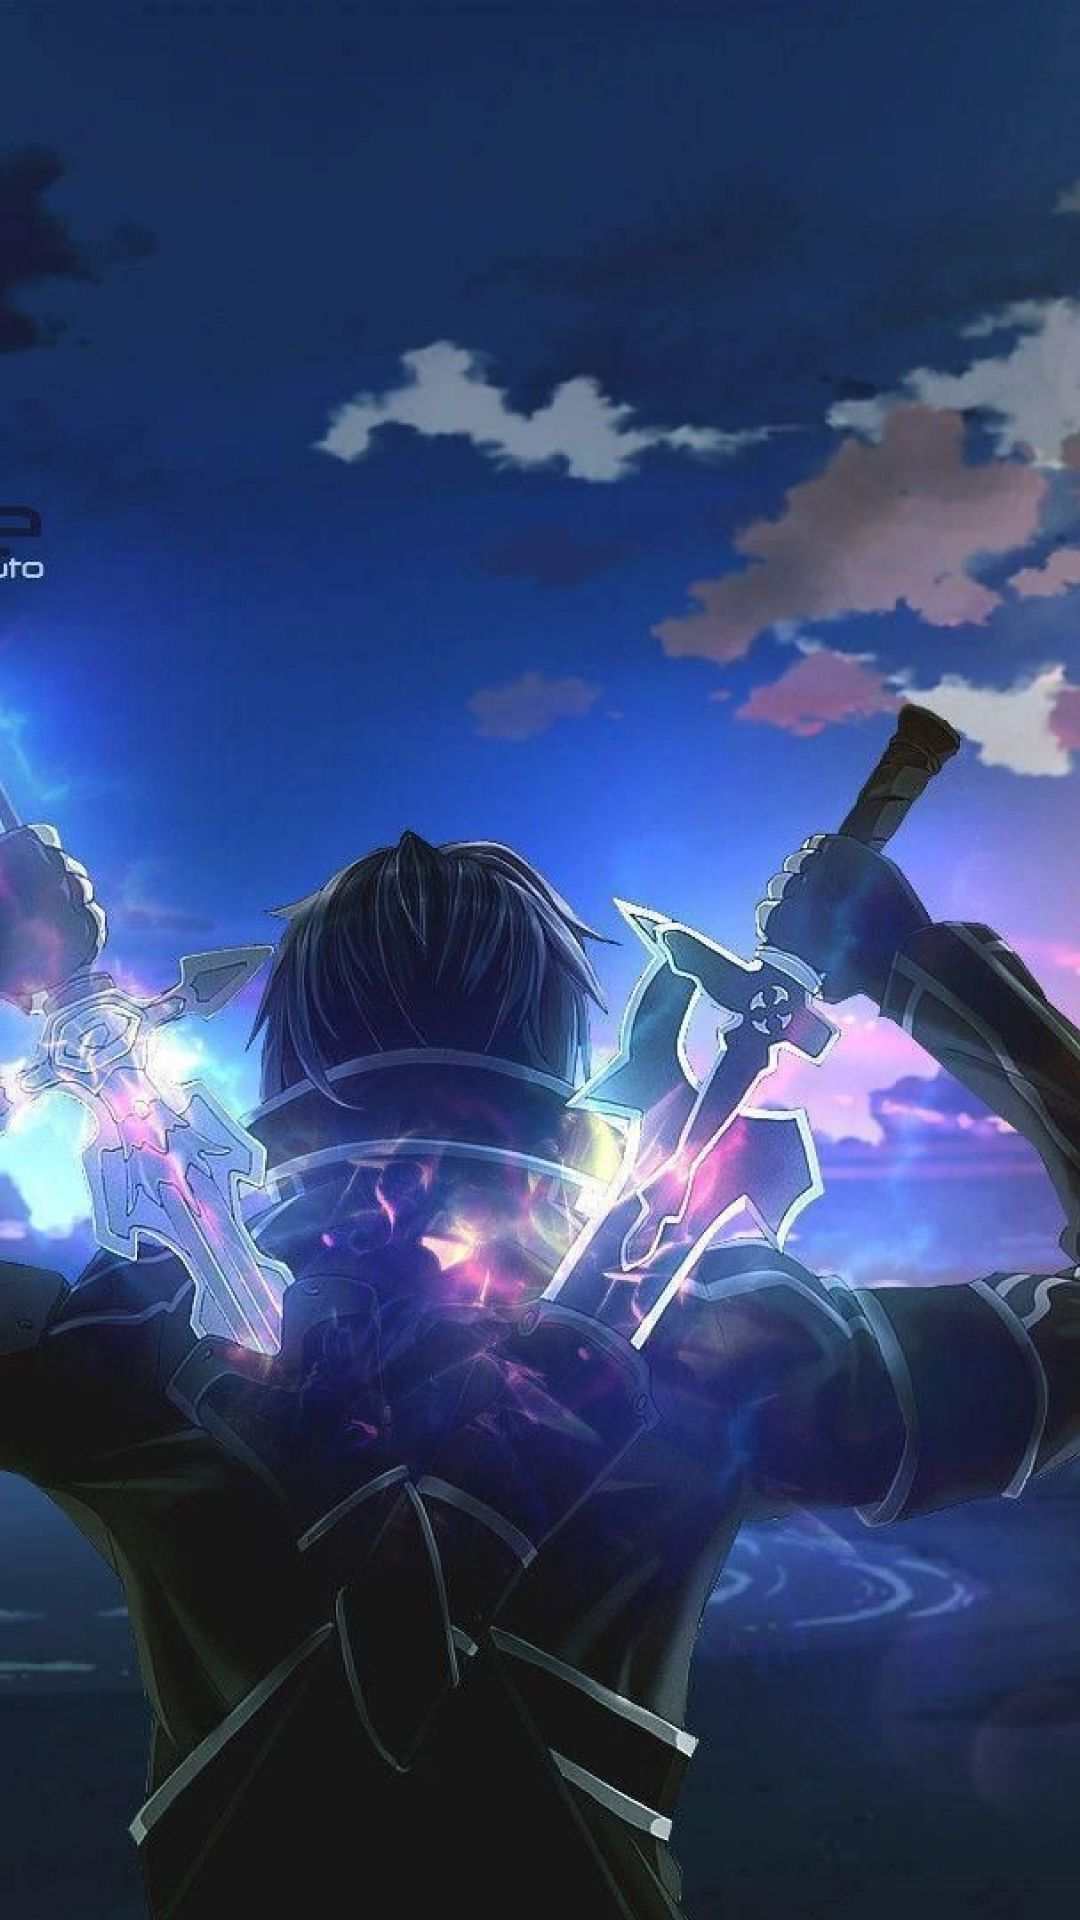 Epic Anime Pictures : anime, pictures, Awesome, Background, Anime, Wallpaper,, Wallpaper, Iphone,, Iphone, Images